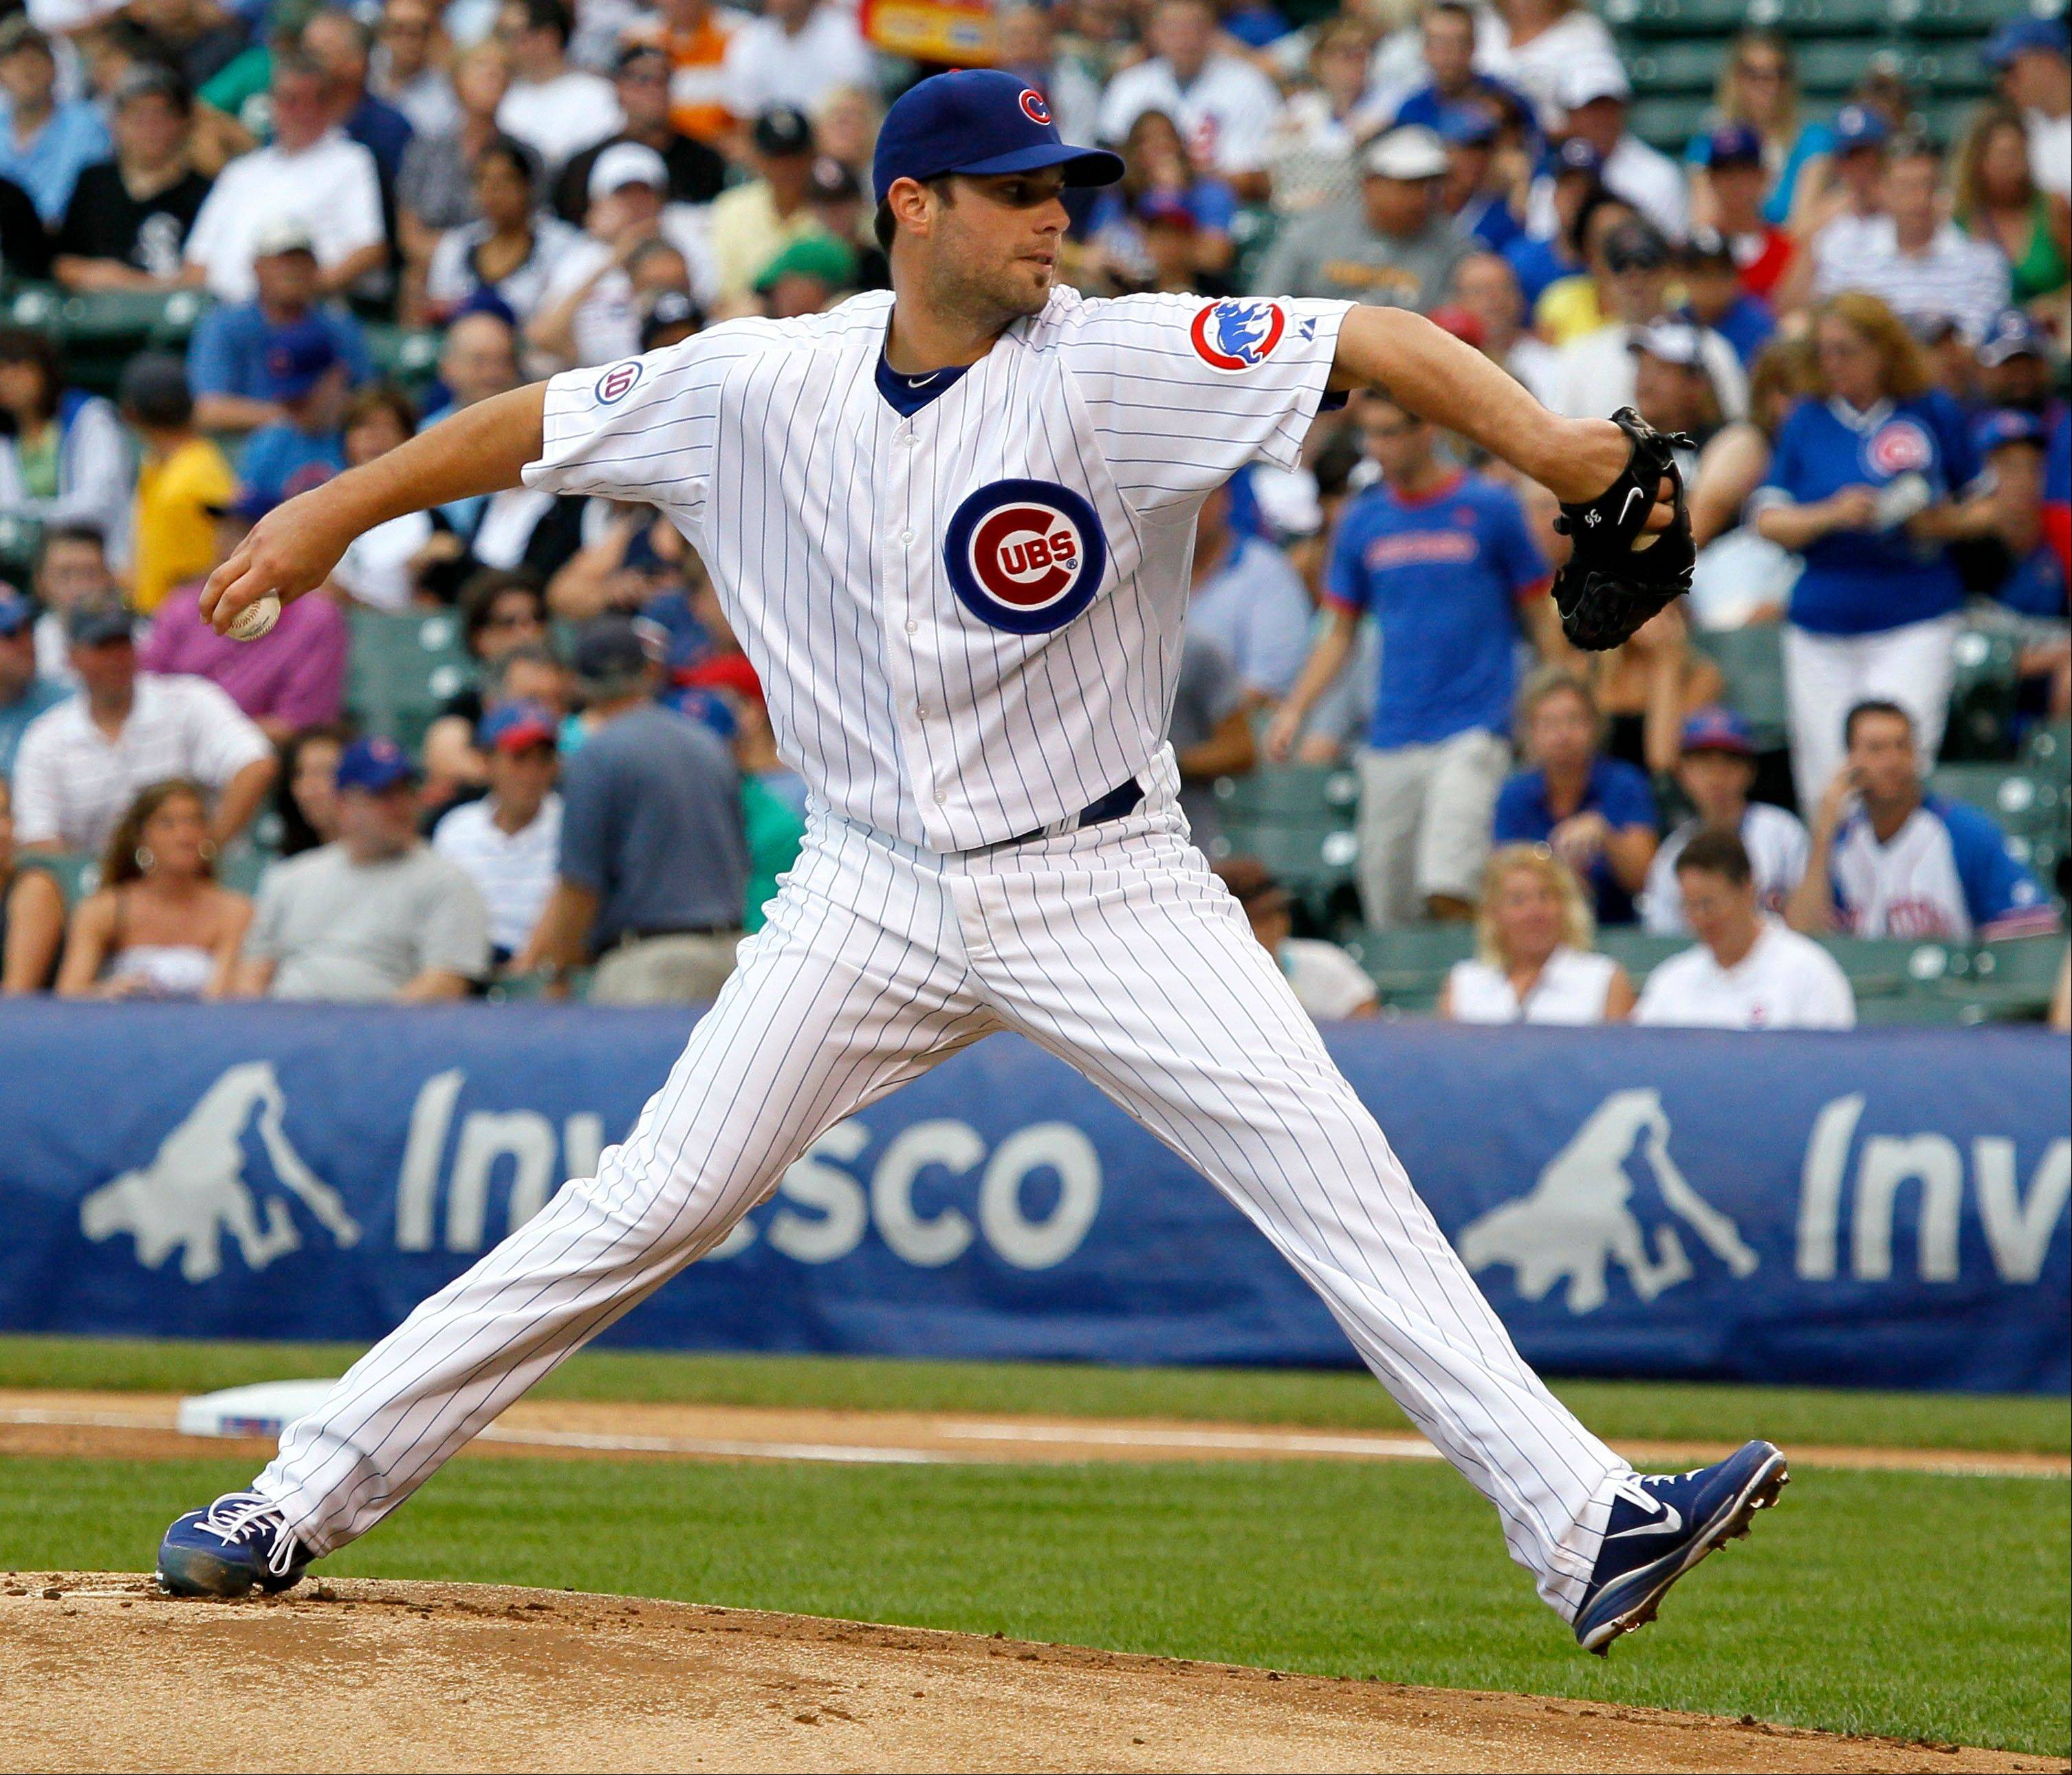 Cubs starting pitcher Randy Wells took the loss Friday against the White Sox. Manager Mike Quade took the blame for leaving Wells in too long Friday. Wells gave up 4 runs in the seventh inning.